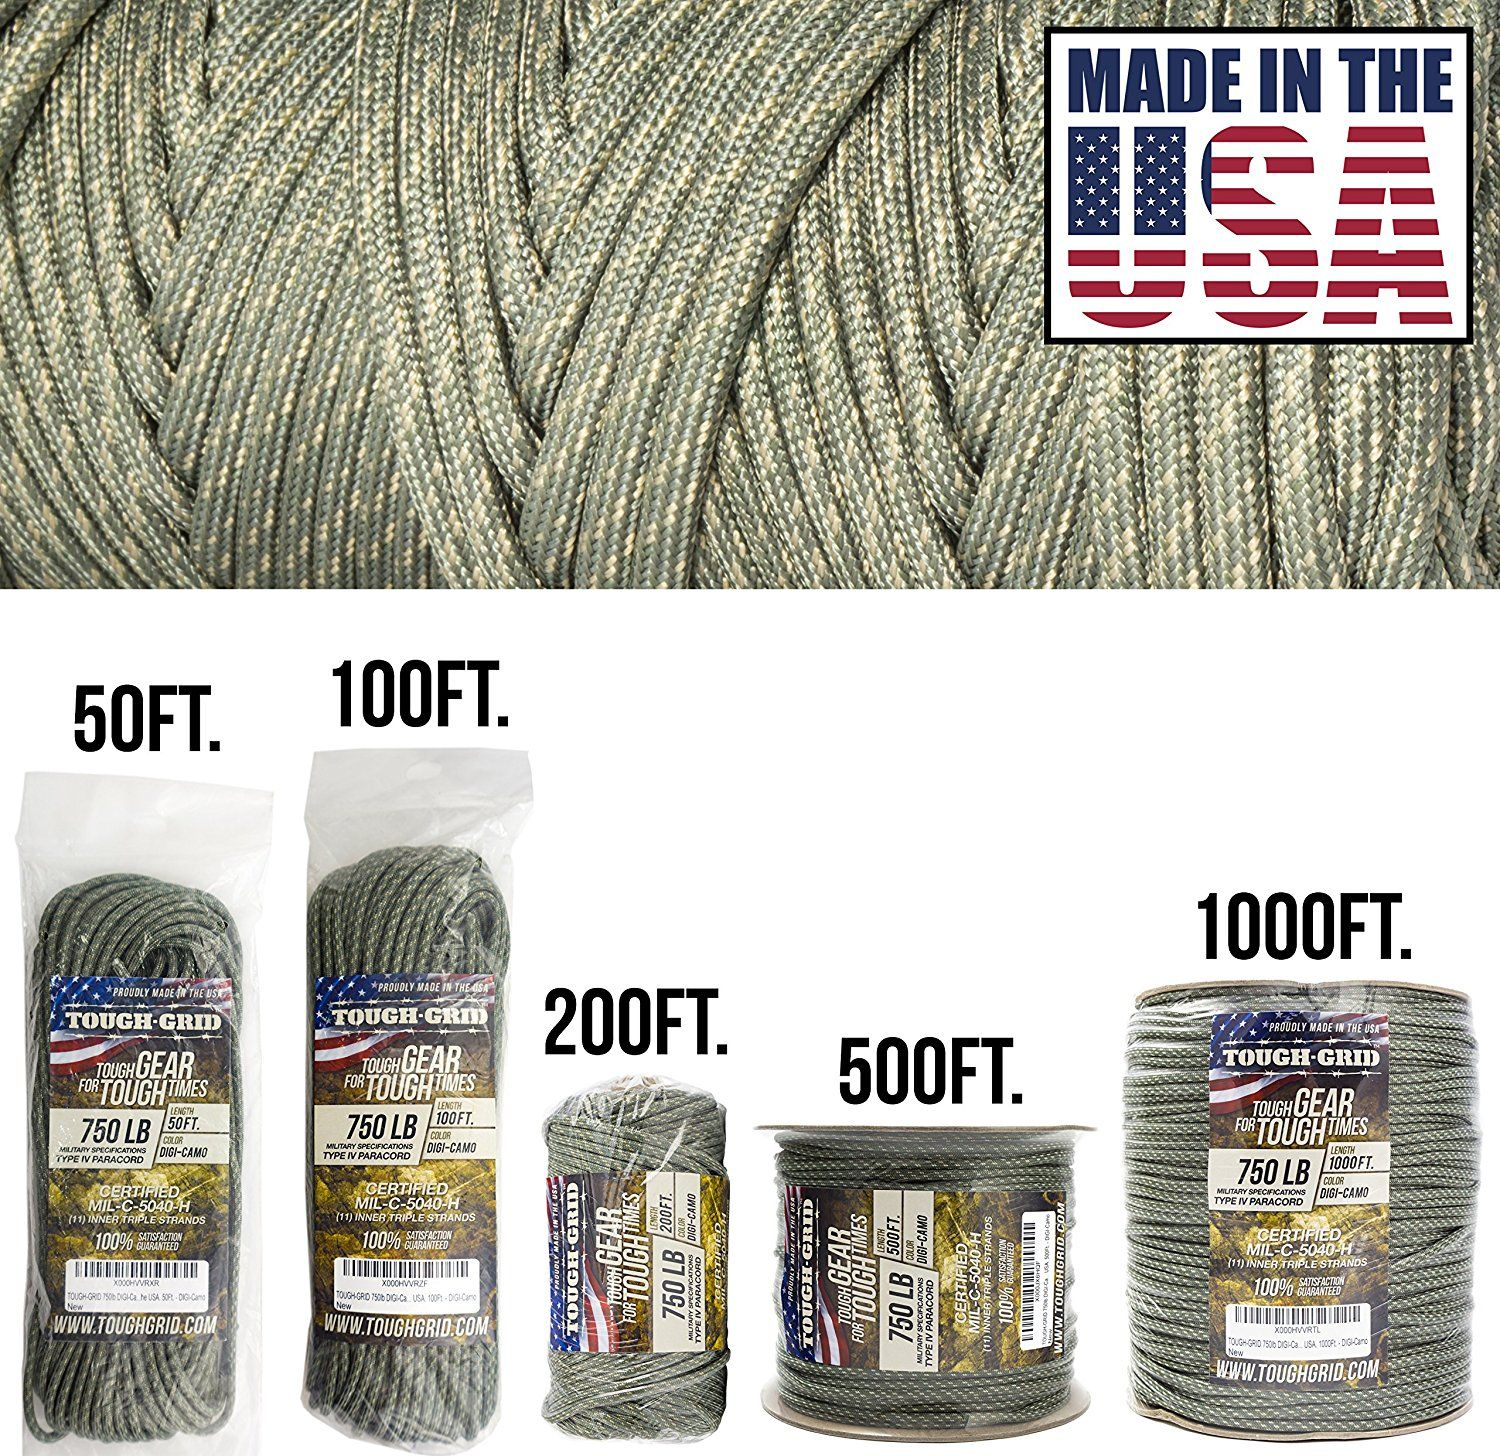 Made In The USA. Genuine Mil Spec Type IV 750lb Paracord Used by the US Military TOUGH-GRID 750lb Paracord//Parachute Cord - 100/% Nylon MIl-C-5040-H